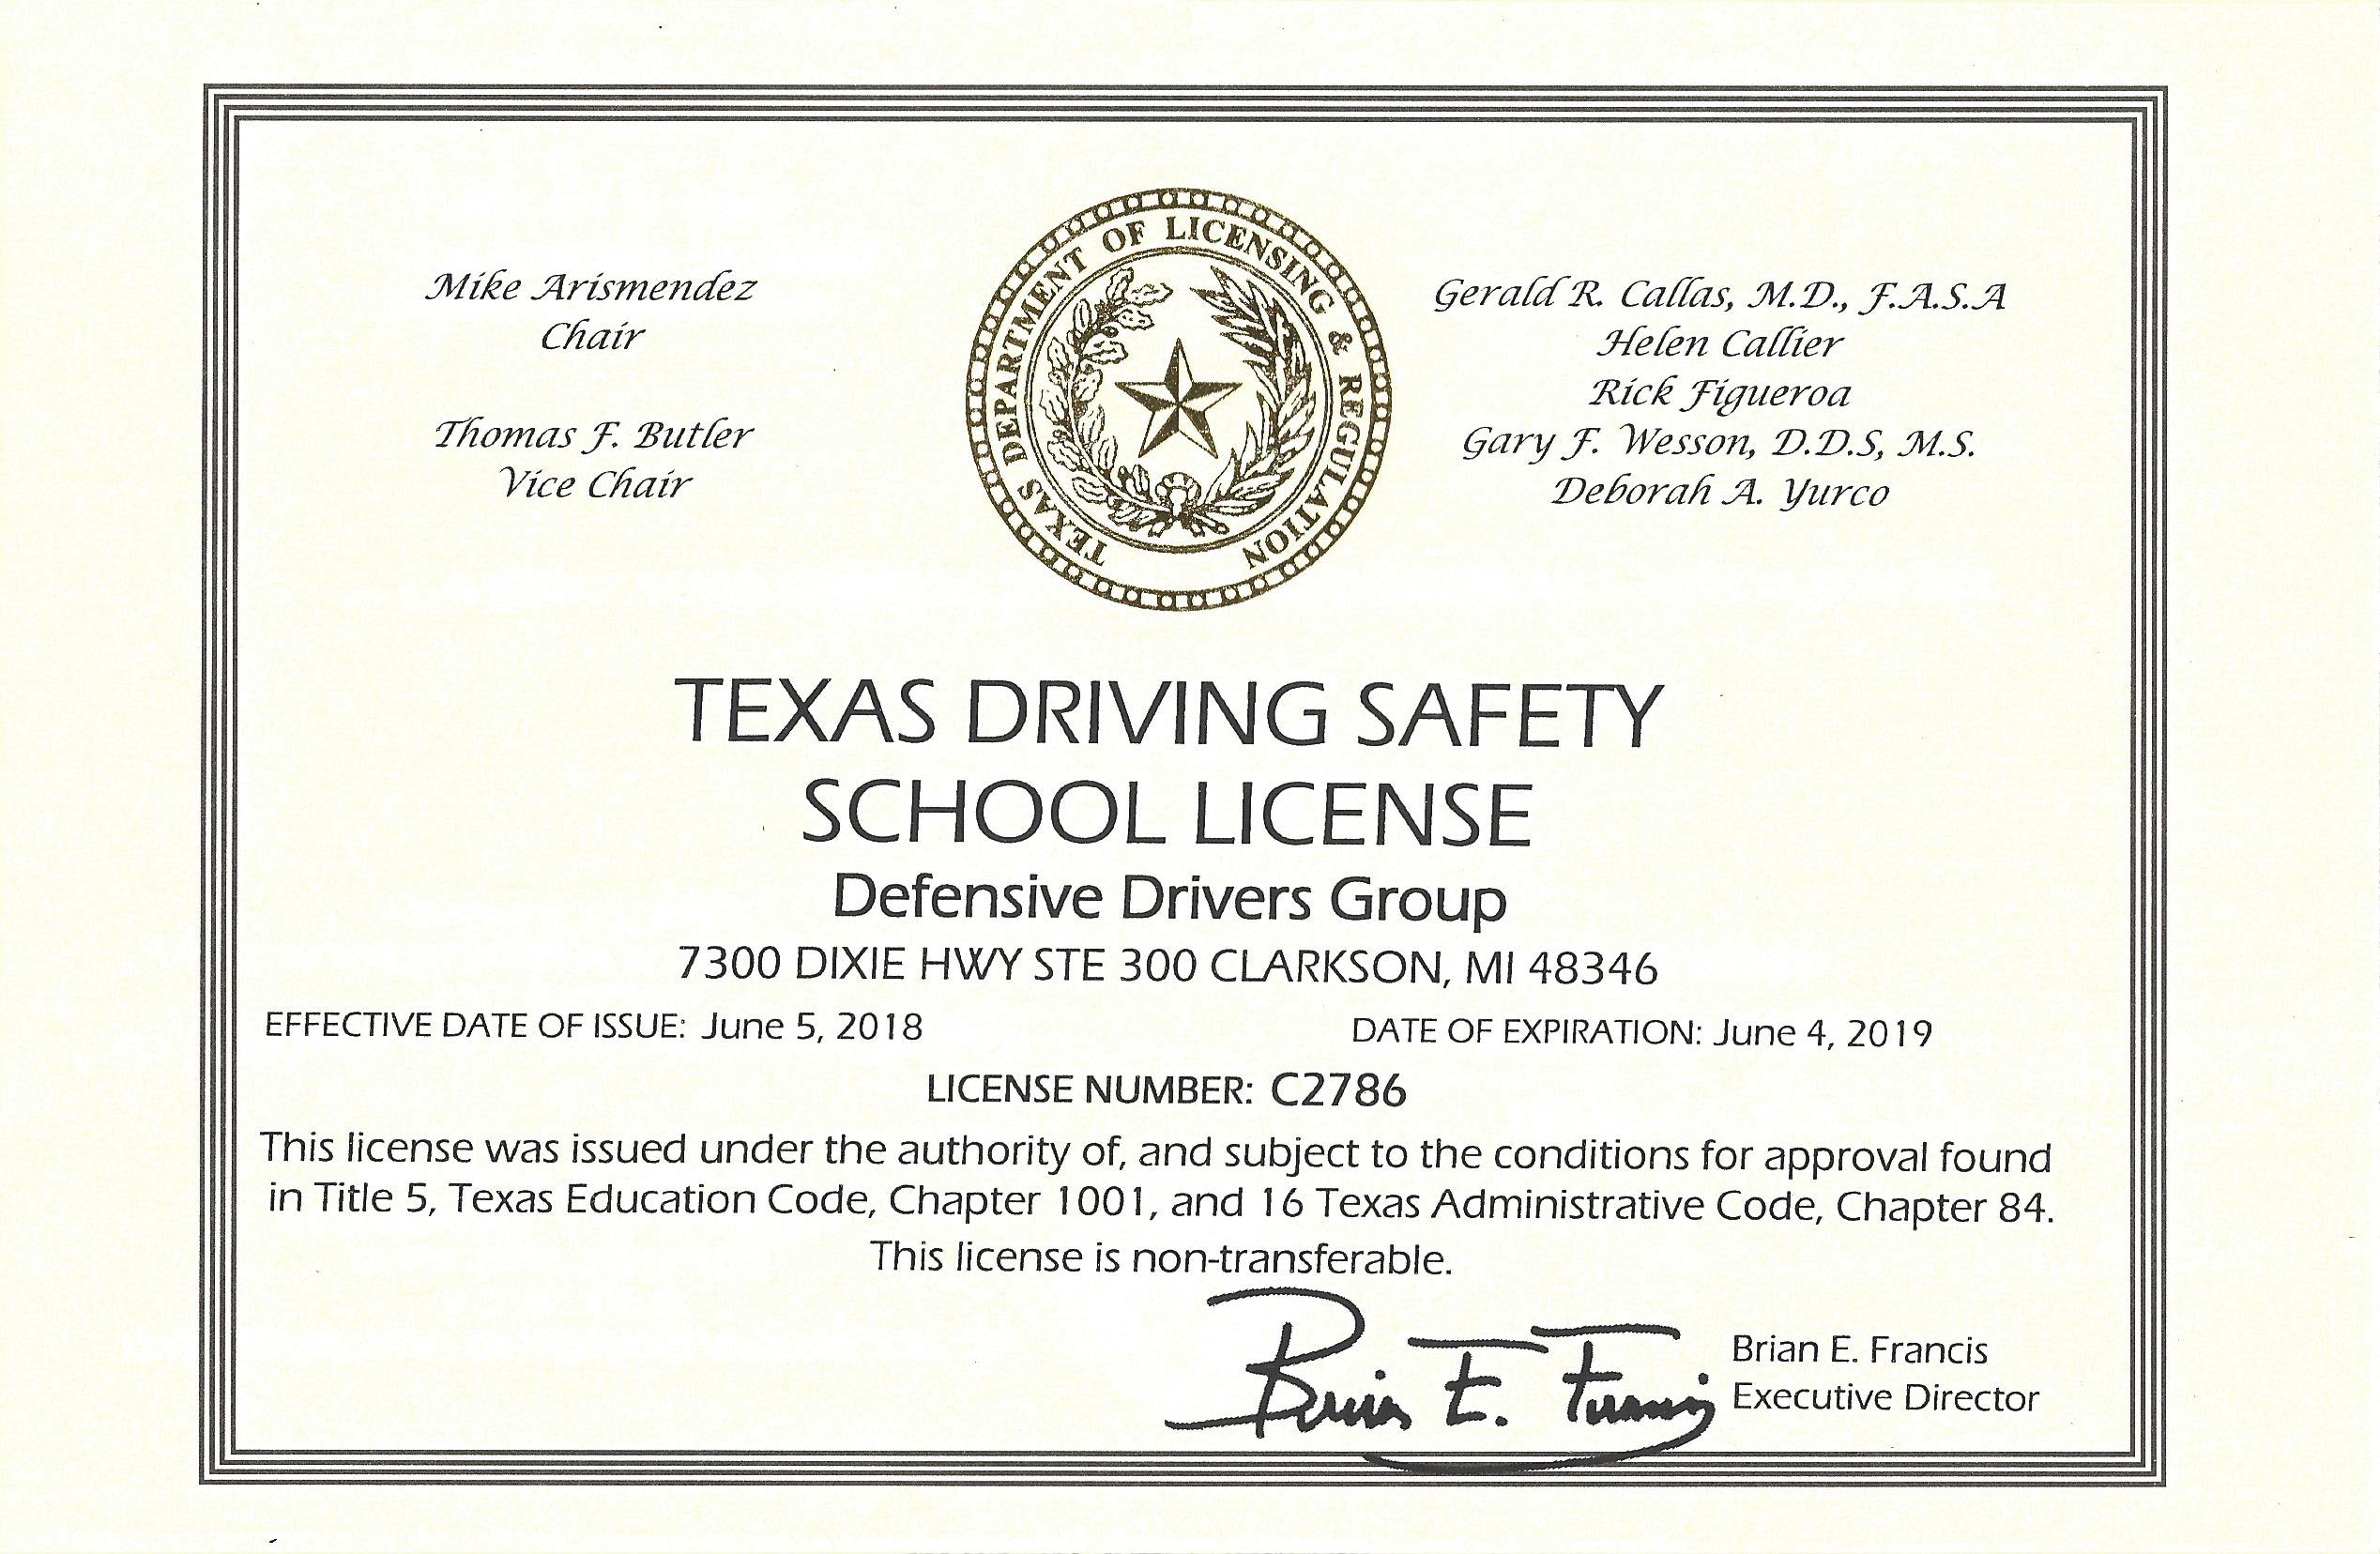 image regarding Defensive Driving Course Online Texas Printable Certificate called Texas Defensive Guiding On the net Plans TDLR Authorised - Residence